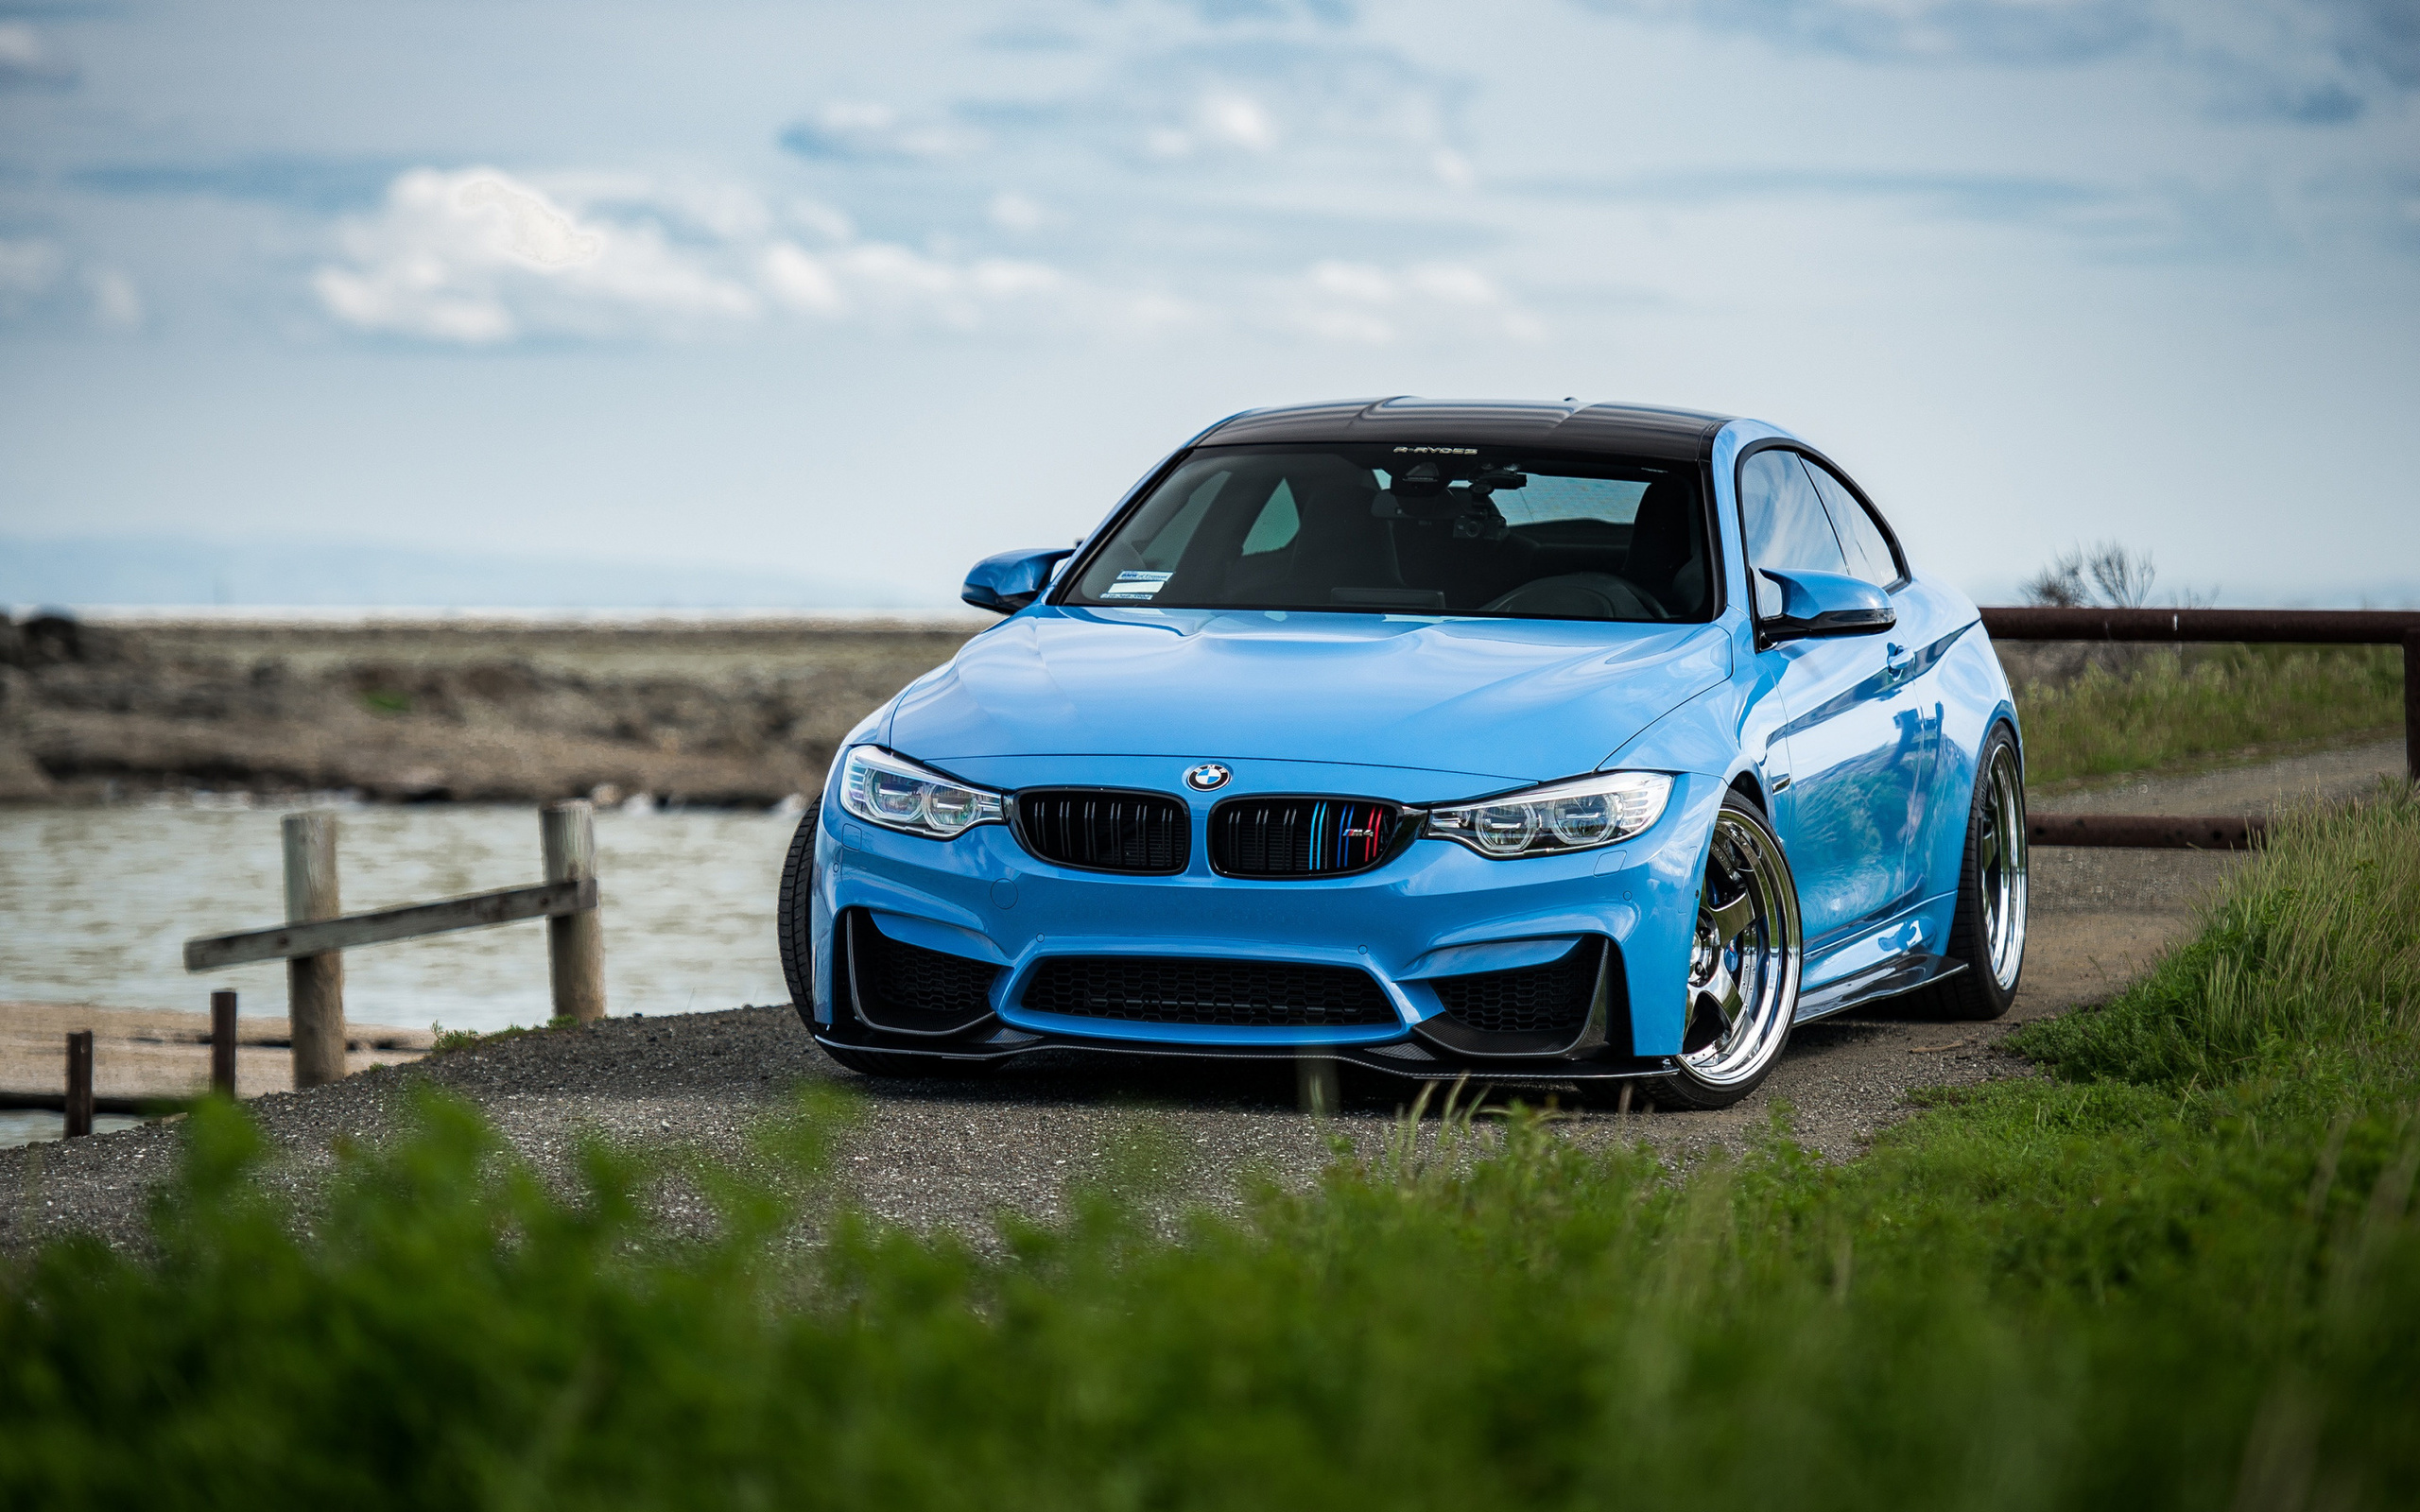 bmw, m4, m package, exterior, blue, sports coupe, tuning